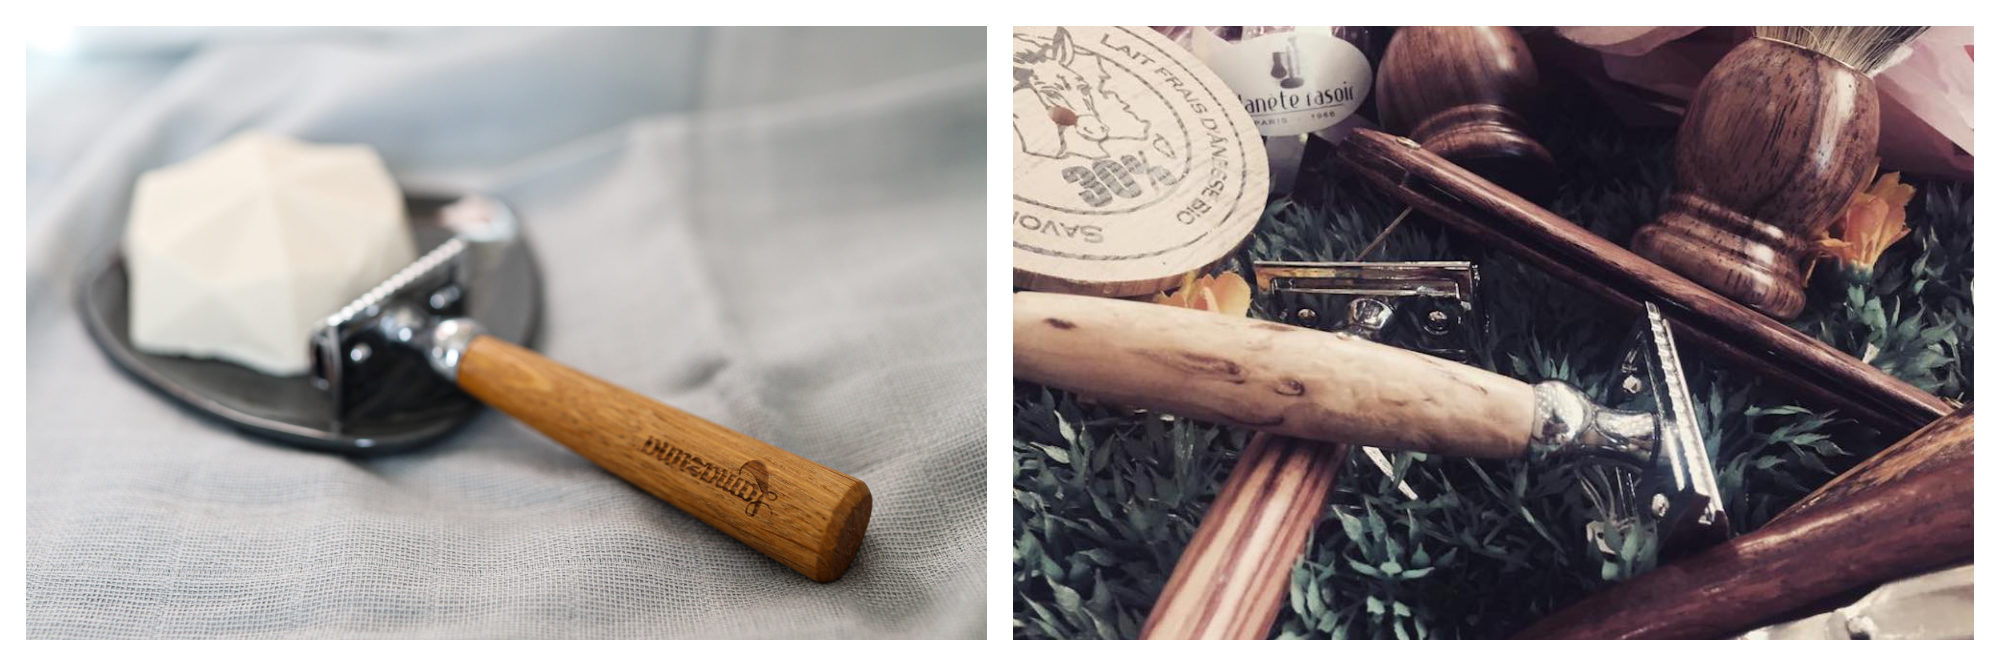 A French brand Lamazuna razor with wooden handle by a block of soap (left) and razors with wooden handles from Planète Rasoir (right).